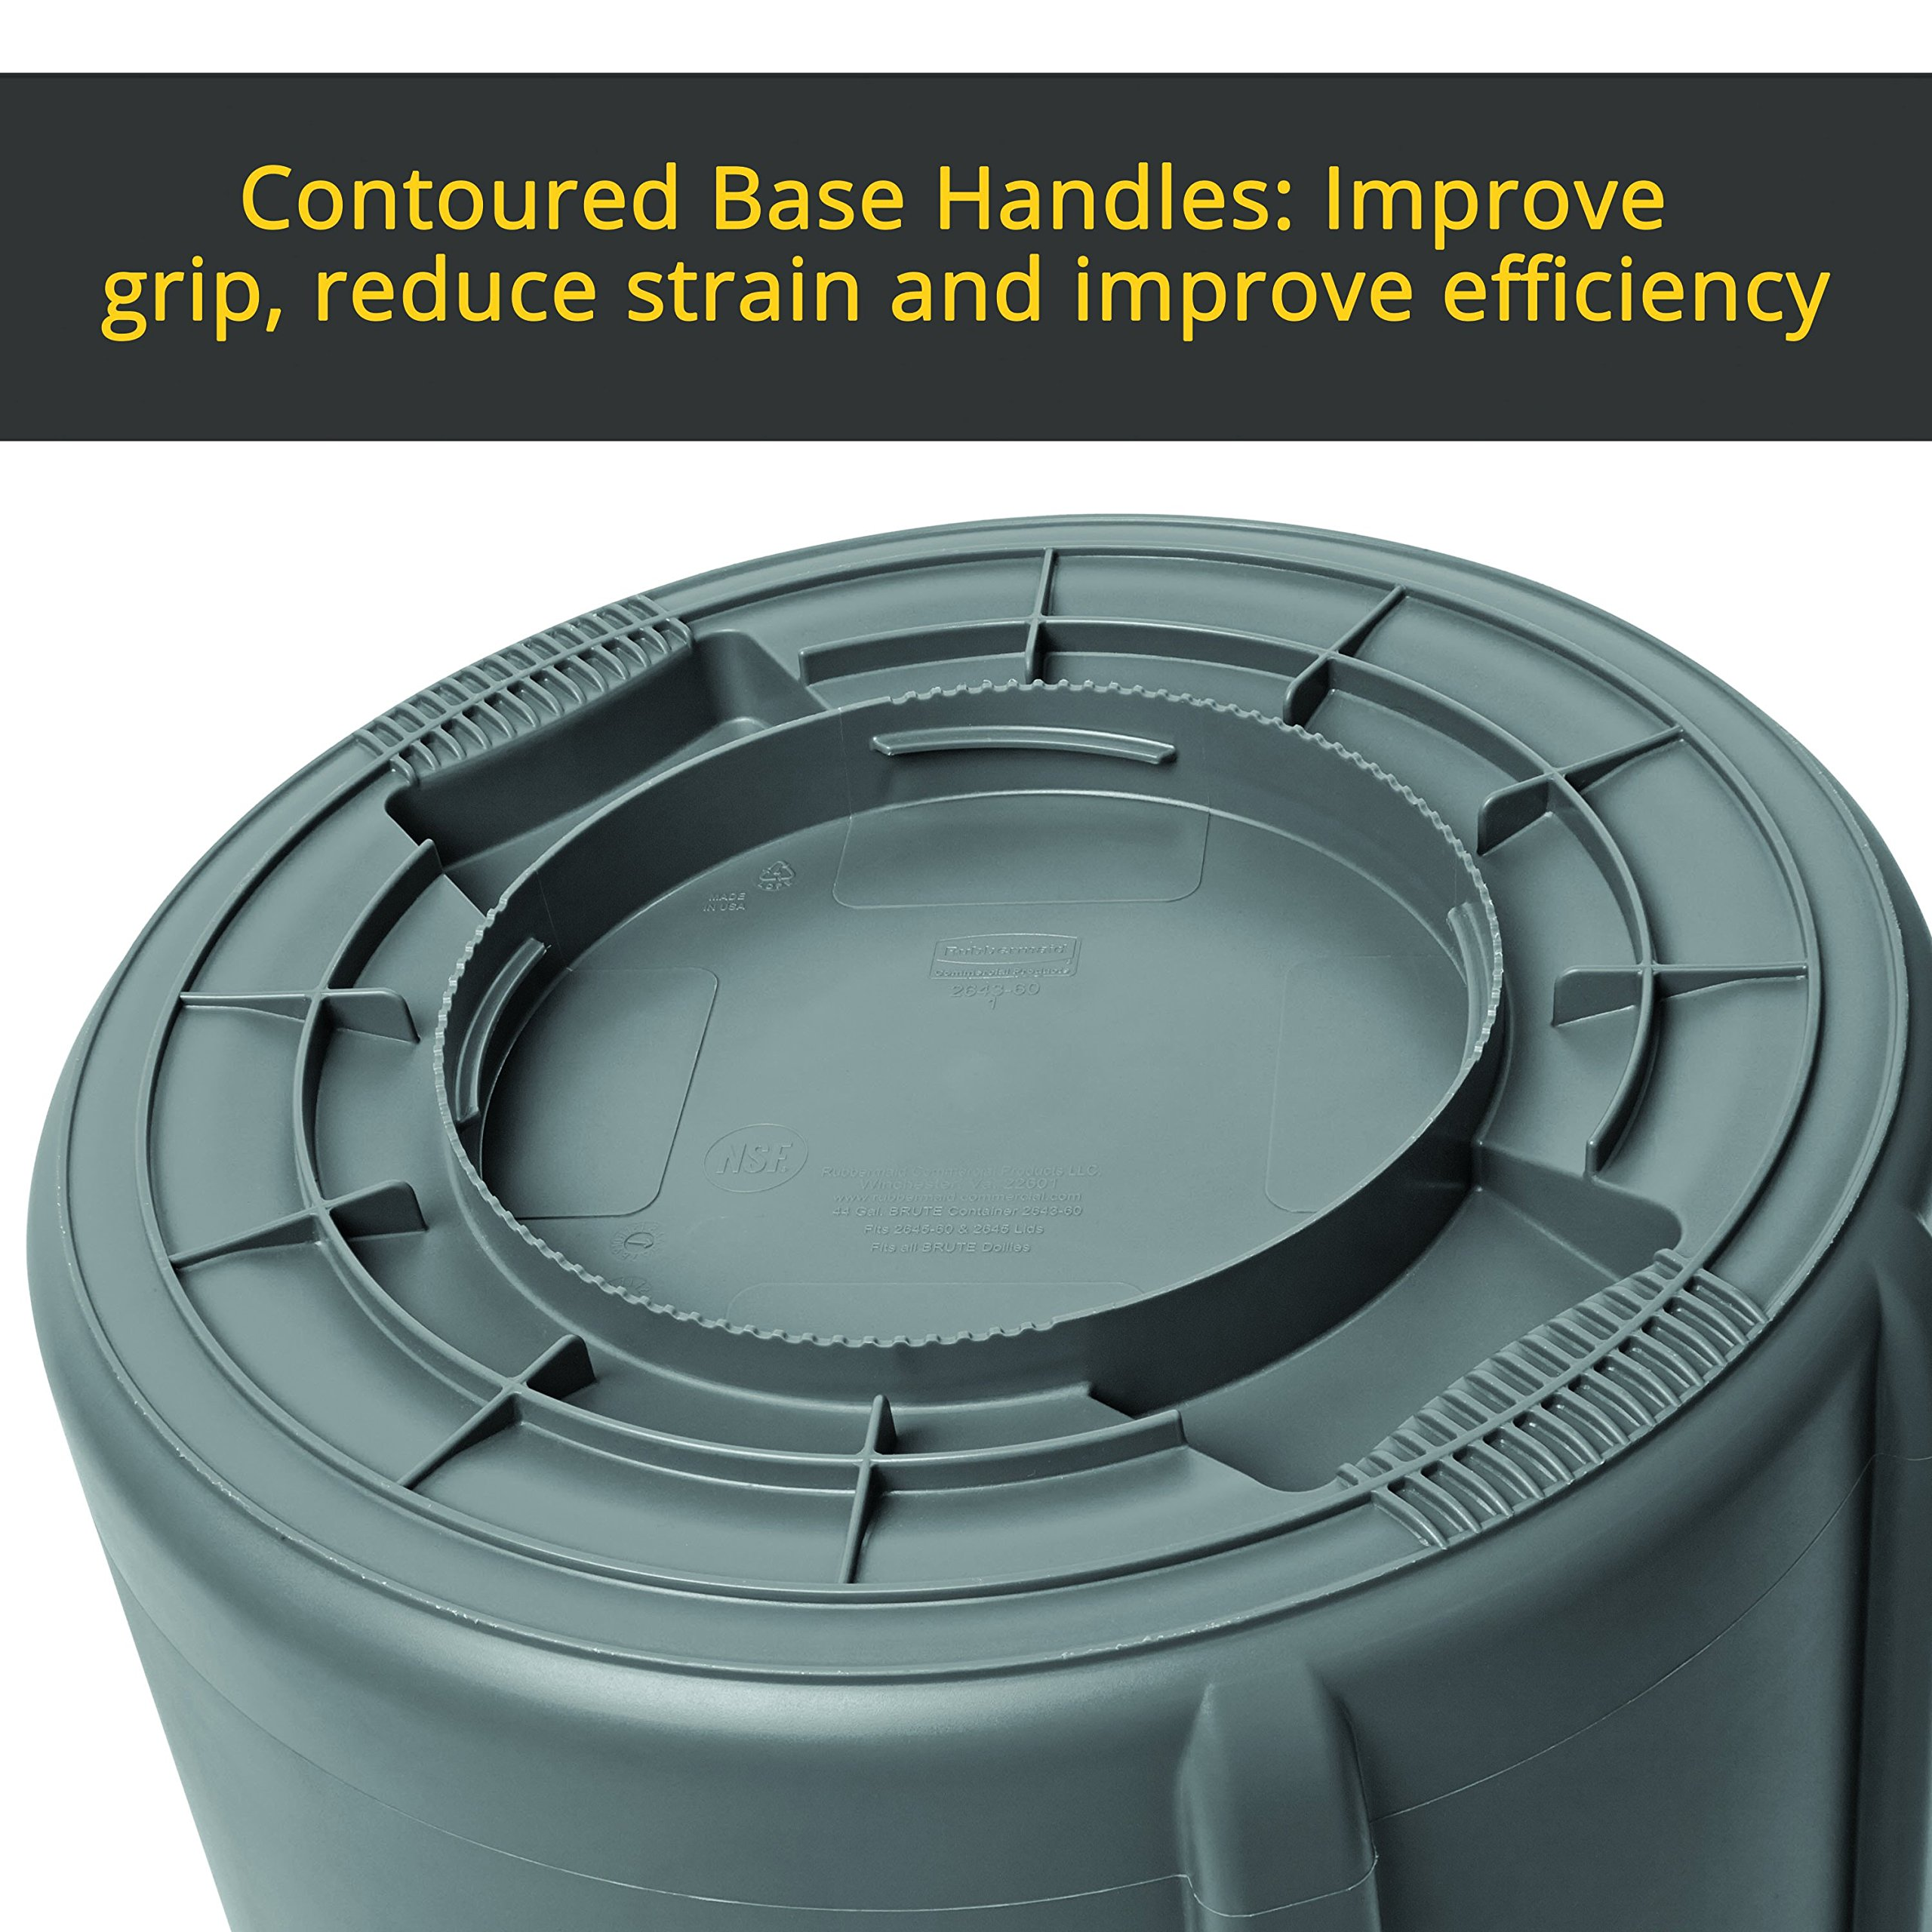 Rubbermaid Commercial Products FG263200GRAY BRUTE Heavy-Duty Round Trash/Garbage Can, 32-Gallon, Gray by Rubbermaid Commercial Products (Image #10)